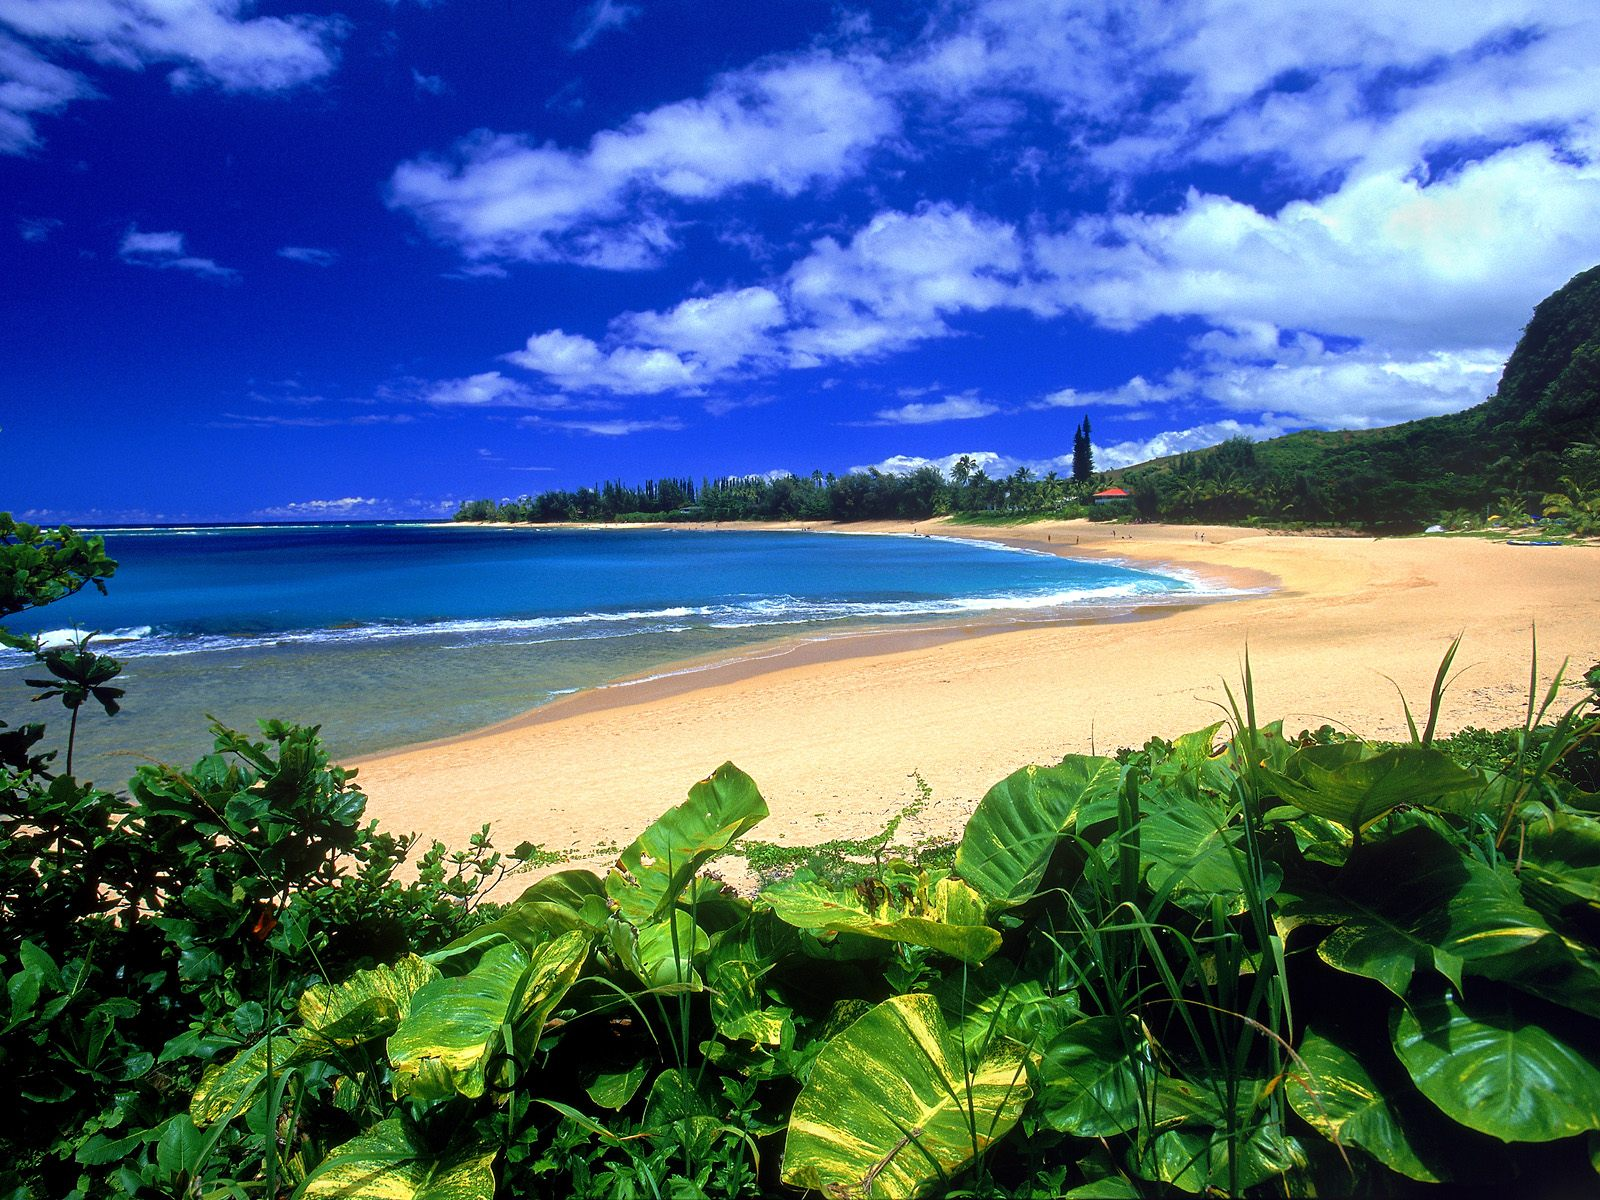 Hawaii Beach Wallpaper hd With Resolutions 16001200 Pixel 1600x1200